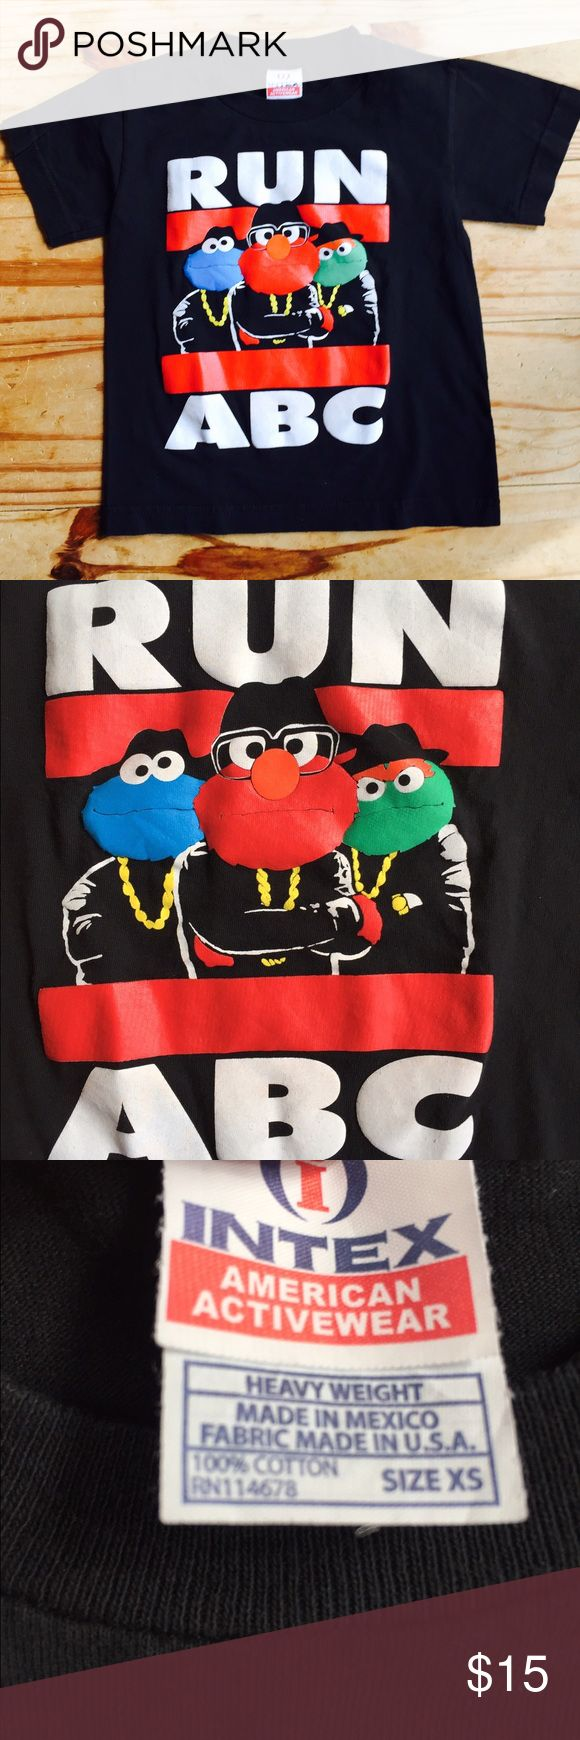 RUN-ABC Sesame Street Tee Perfect condition - washed but never worn! Black 100% cotton short sleeve t-shirt with RUN-ABC logo featuring Elmo, Cookie Monster and Oscar the Grouch from Sesame Street. Perfect for your mini hip hop fan! Size XS (seems comparable to a 5T in most brands). Shirts & Tops Tees - Short Sleeve